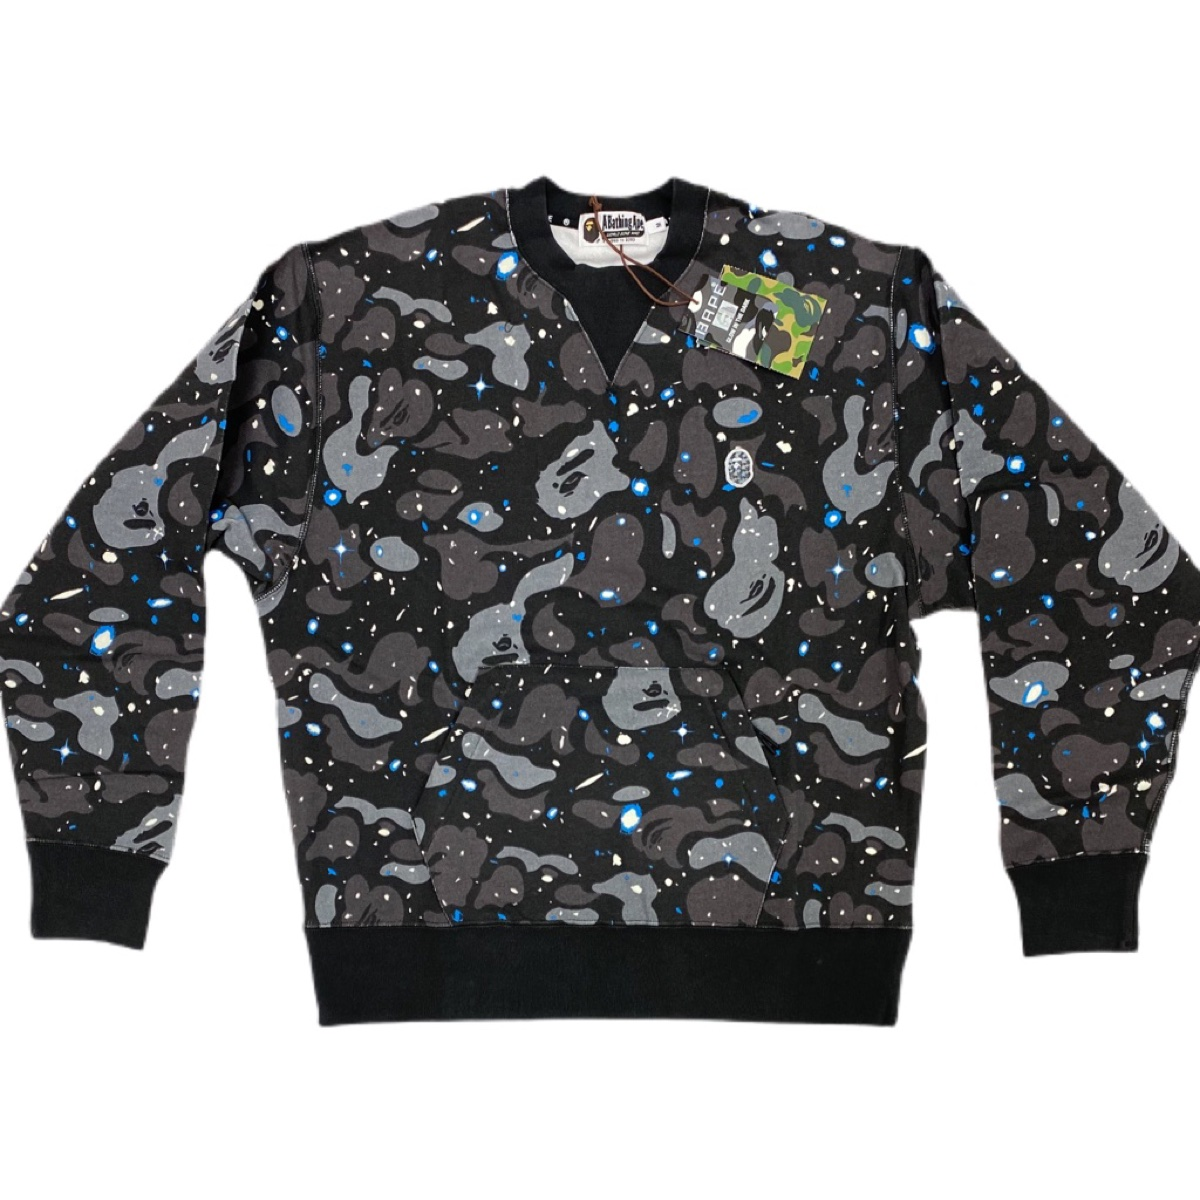 Authentic Bape relaxed space camo crewneck Brand new with tags